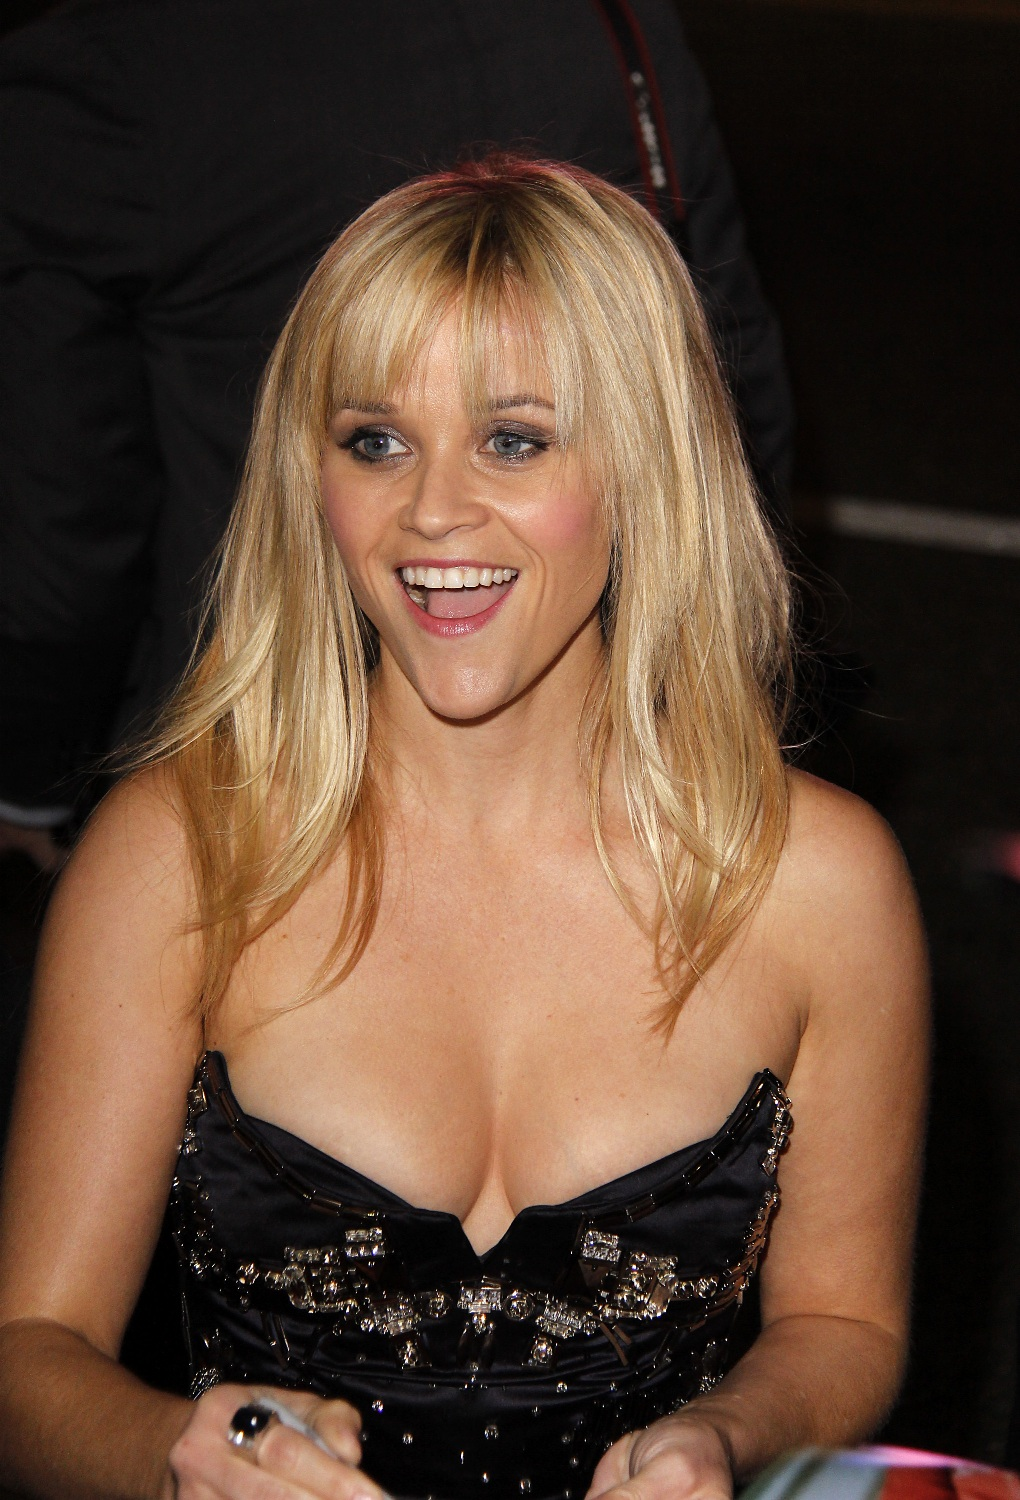 reese_witherspoon_boobs_out_7.jpg Reese Witherspoon